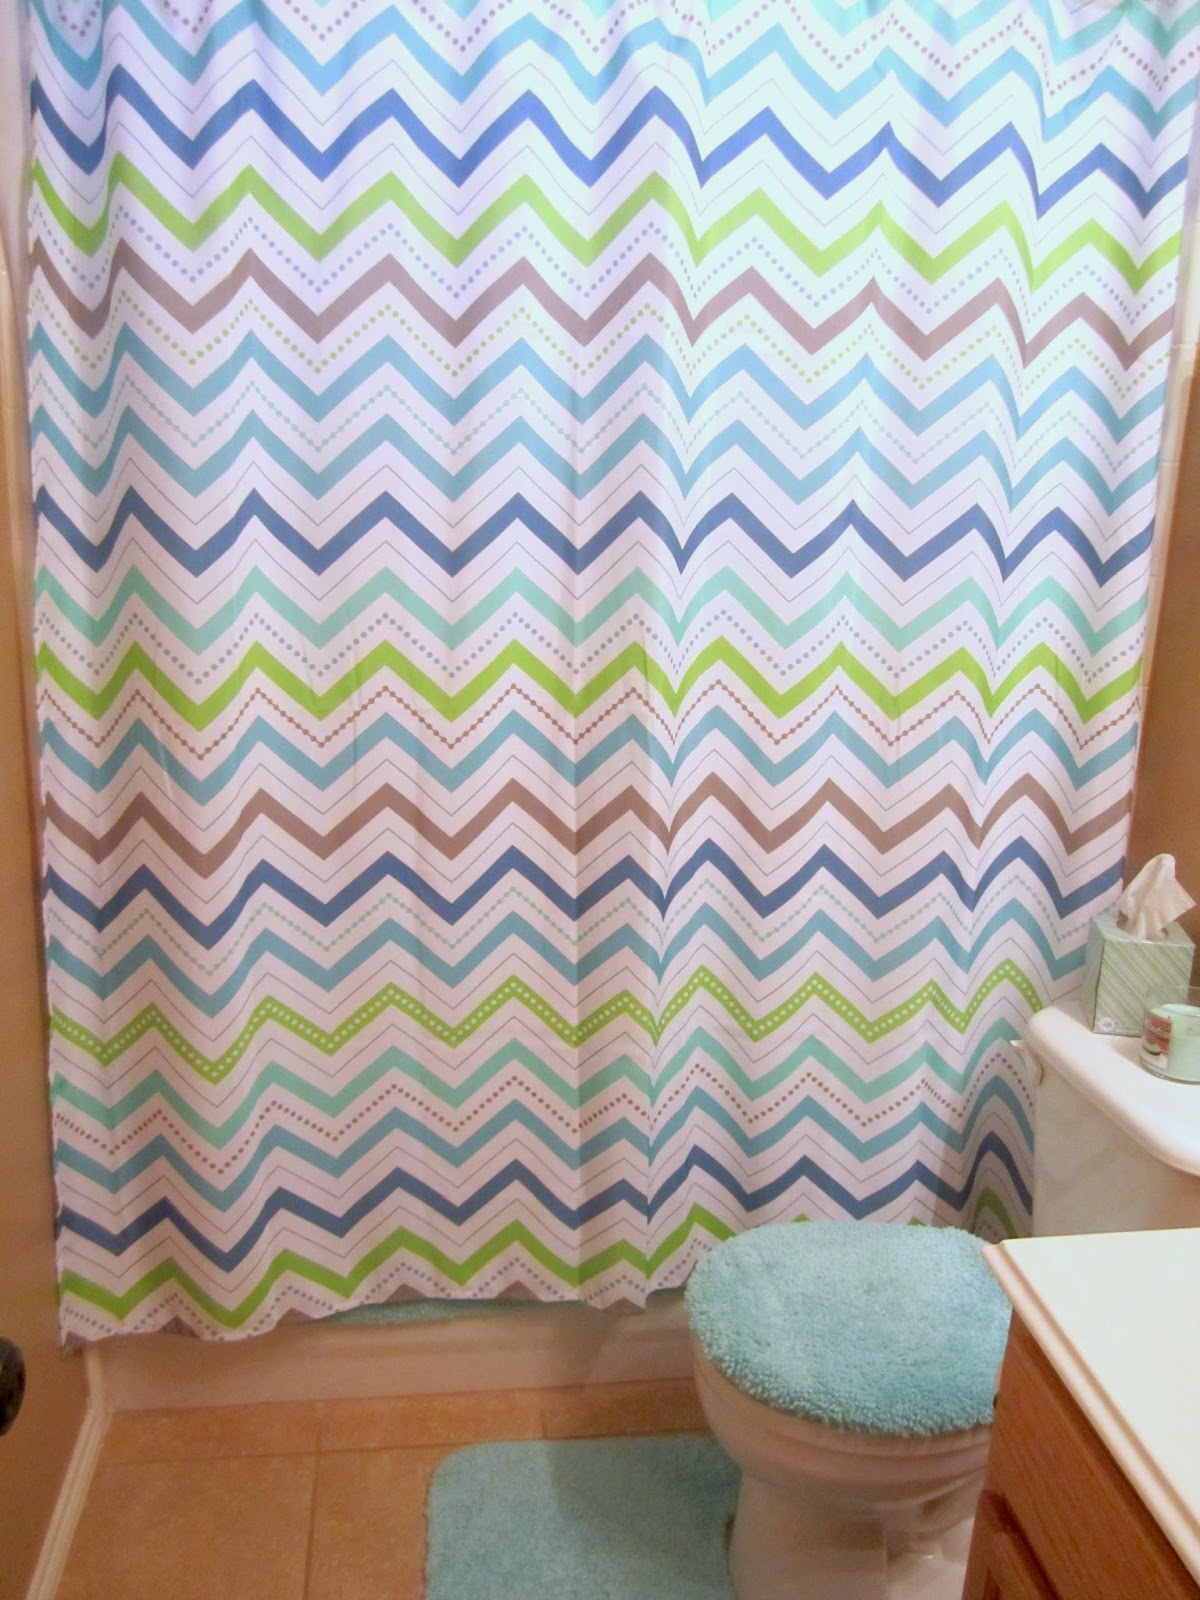 Chevron bathroom sets with shower curtain and rugs - We Got The Shower Curtain And New Rugs But Target Didn T Have Any Home Decor Pieces To Match